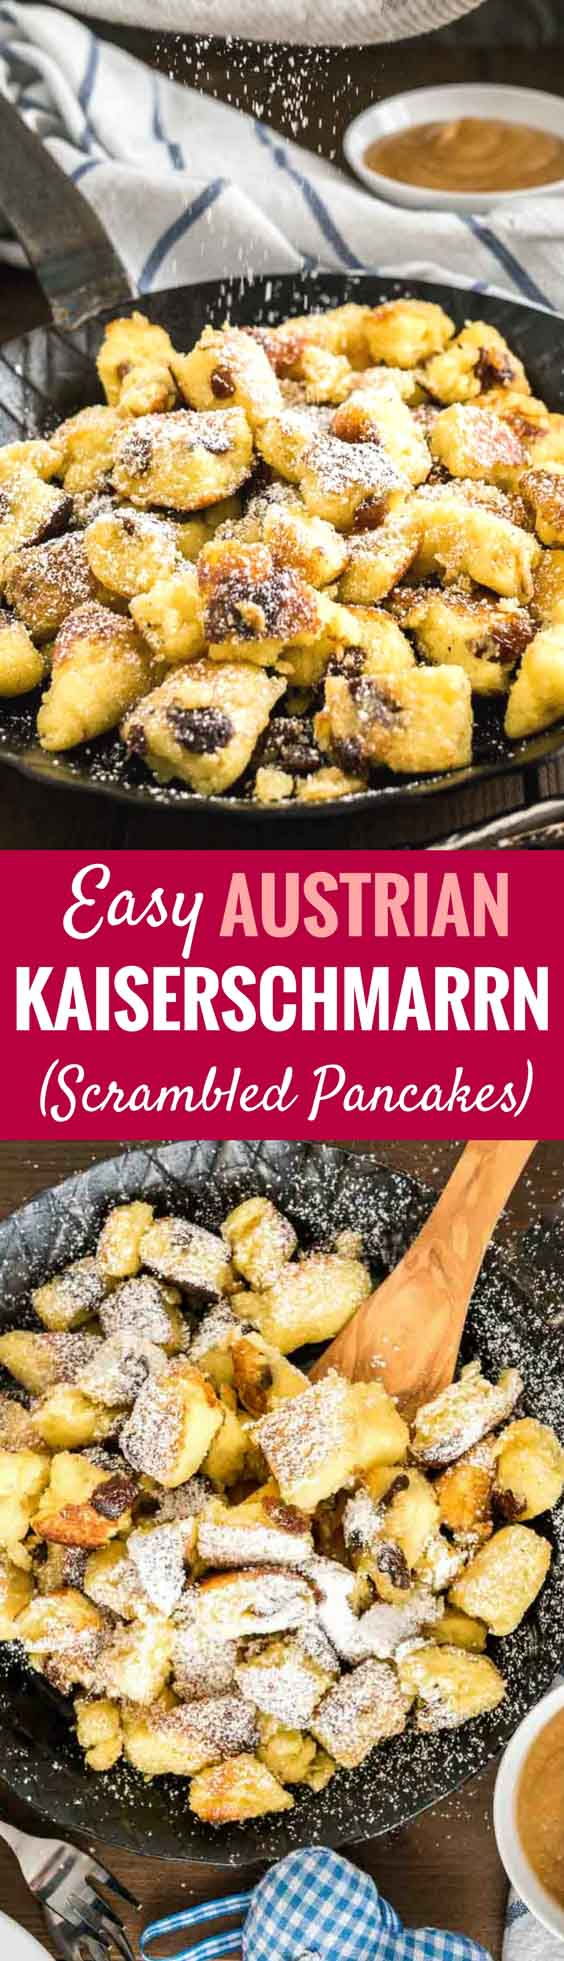 Kaiserschmarrn (Scrambled Pancakes) is an Austrian dessert that's also very popular in Bavaria! A sweet fluffy pancake made with rum-soaked raisins is torn into bite-sized pieces, caramelized, and served sprinkled with powdered sugar, applesauce, and preserves. This easy dessert recipe also tastes great for brunch and is loved by kids and adults alike! #Pancakes #DessertRecipes #Kaiserschmarrn #GermanRecipes #ComfortFood